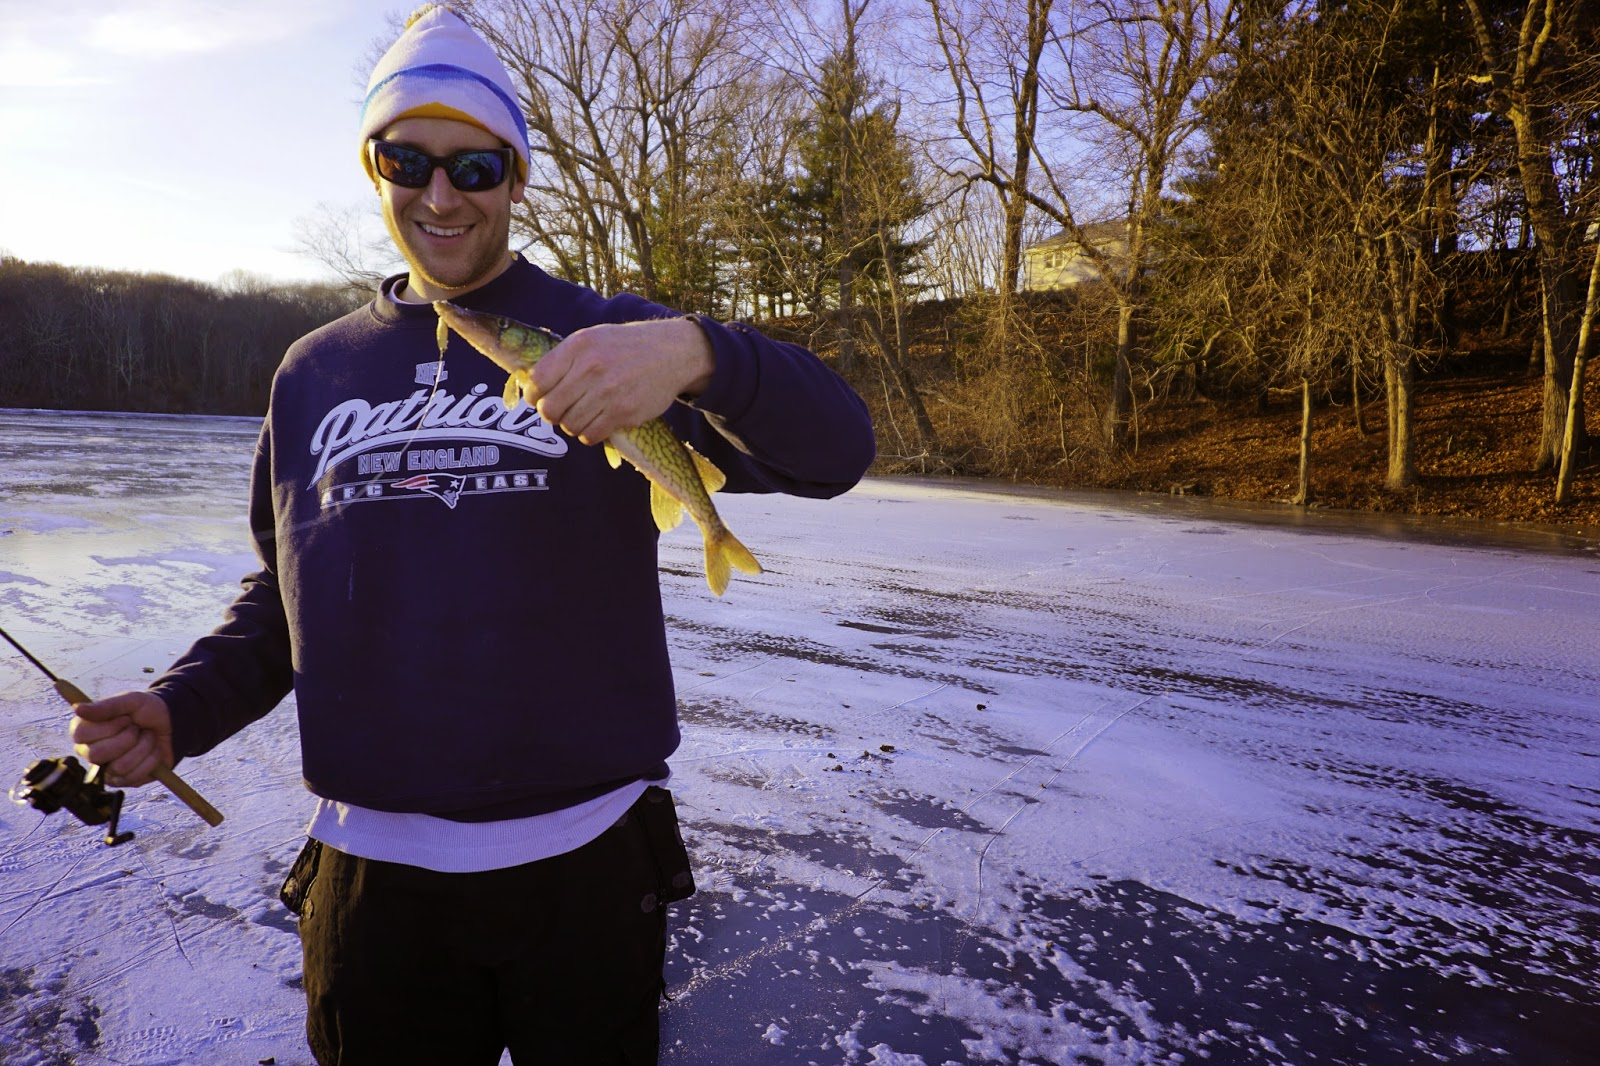 Barneys-Pond-Lincoln-Rhode-Island-Ice-Fishing